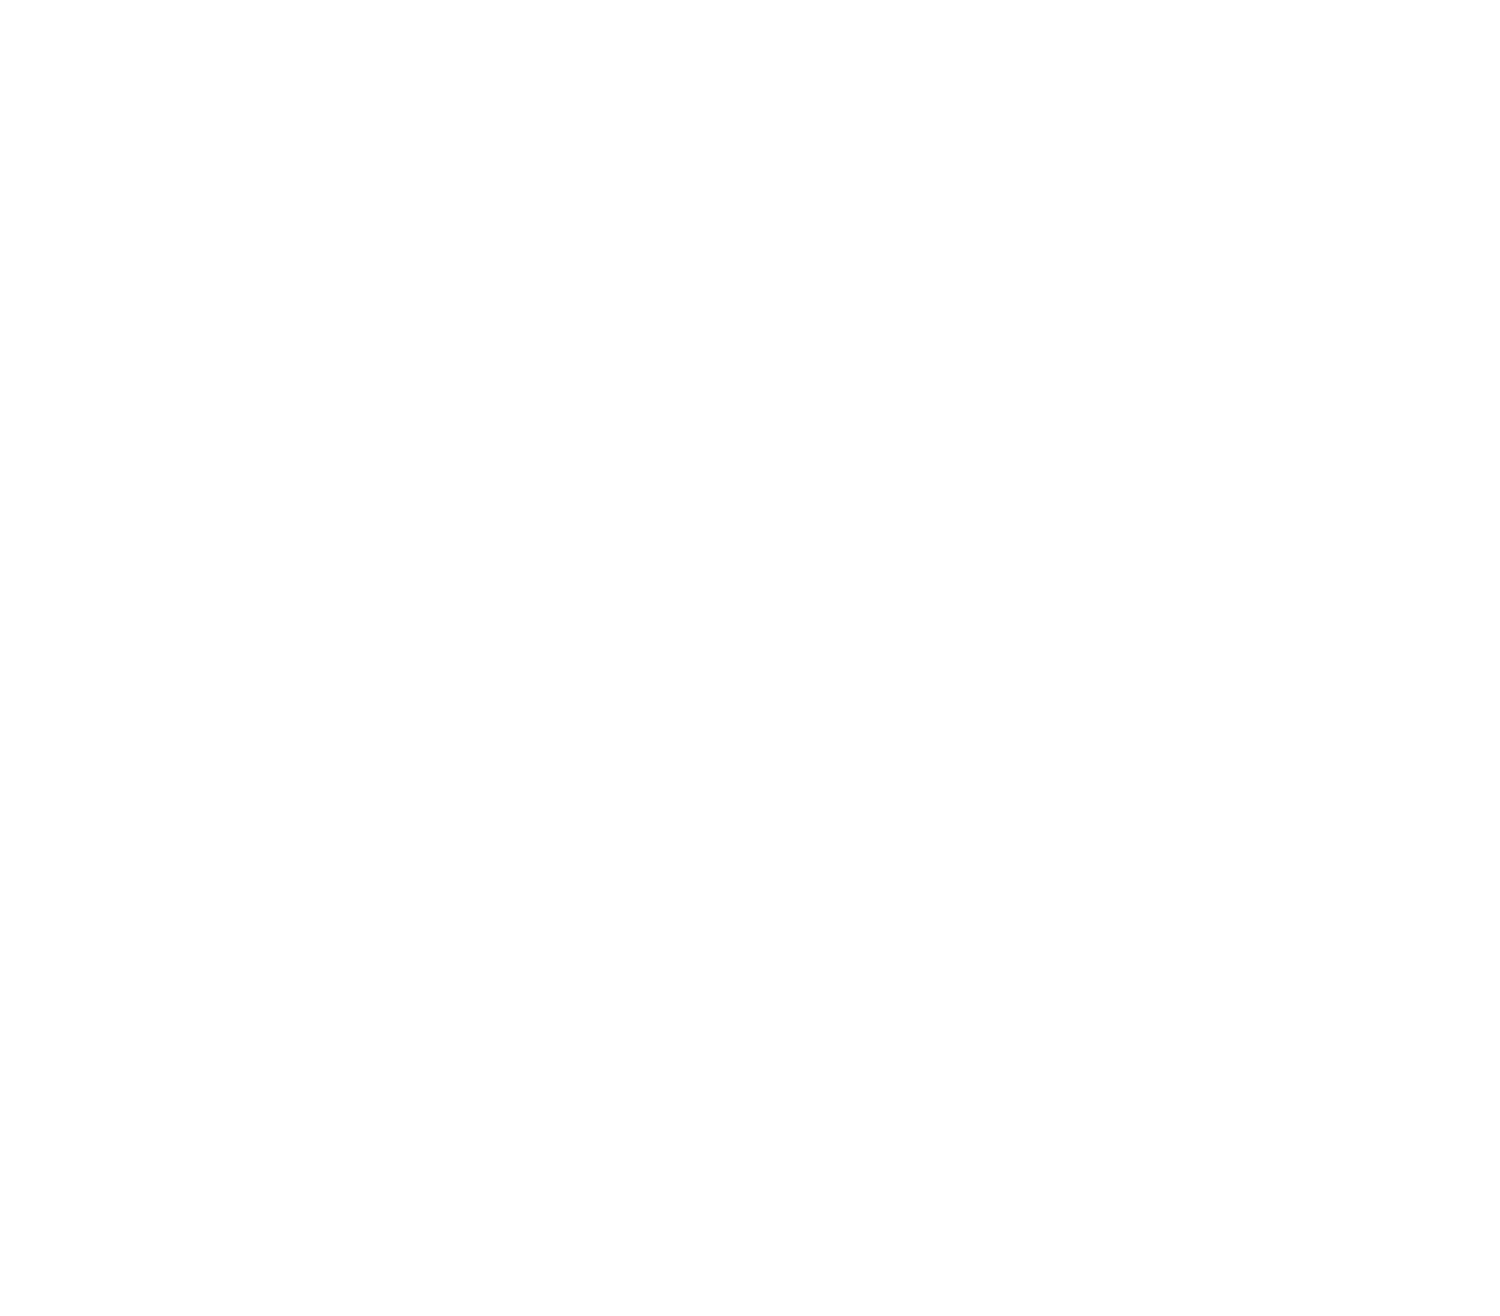 Dragonfly Outdoor Adventures